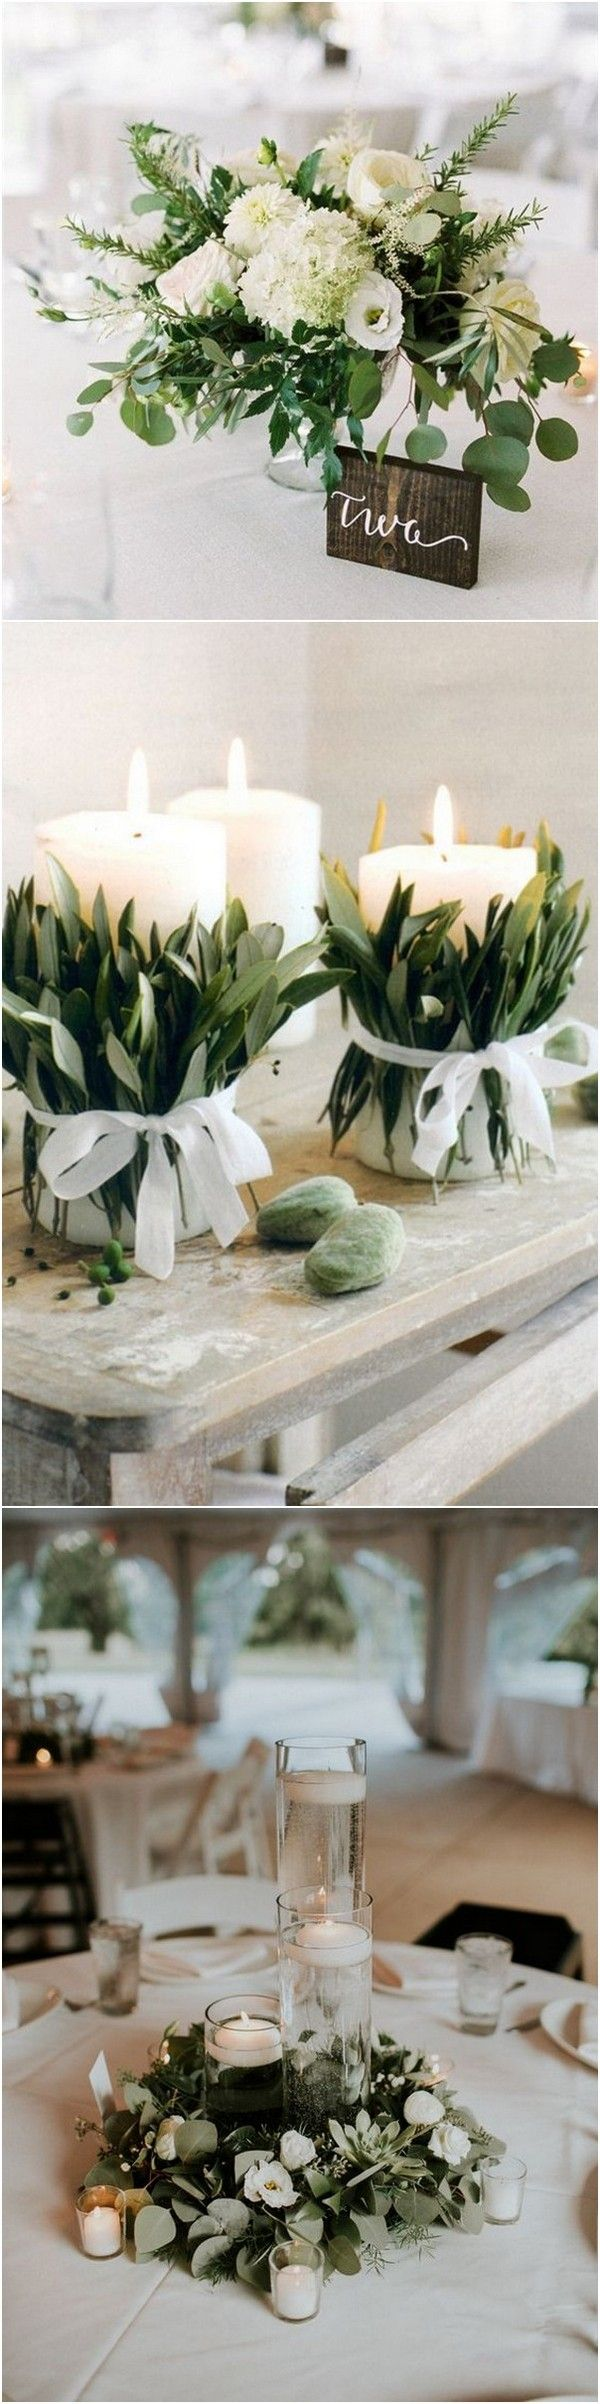 Diy decorations for wedding  Top  White and Greenery Wedding Centerpieces for   DIY